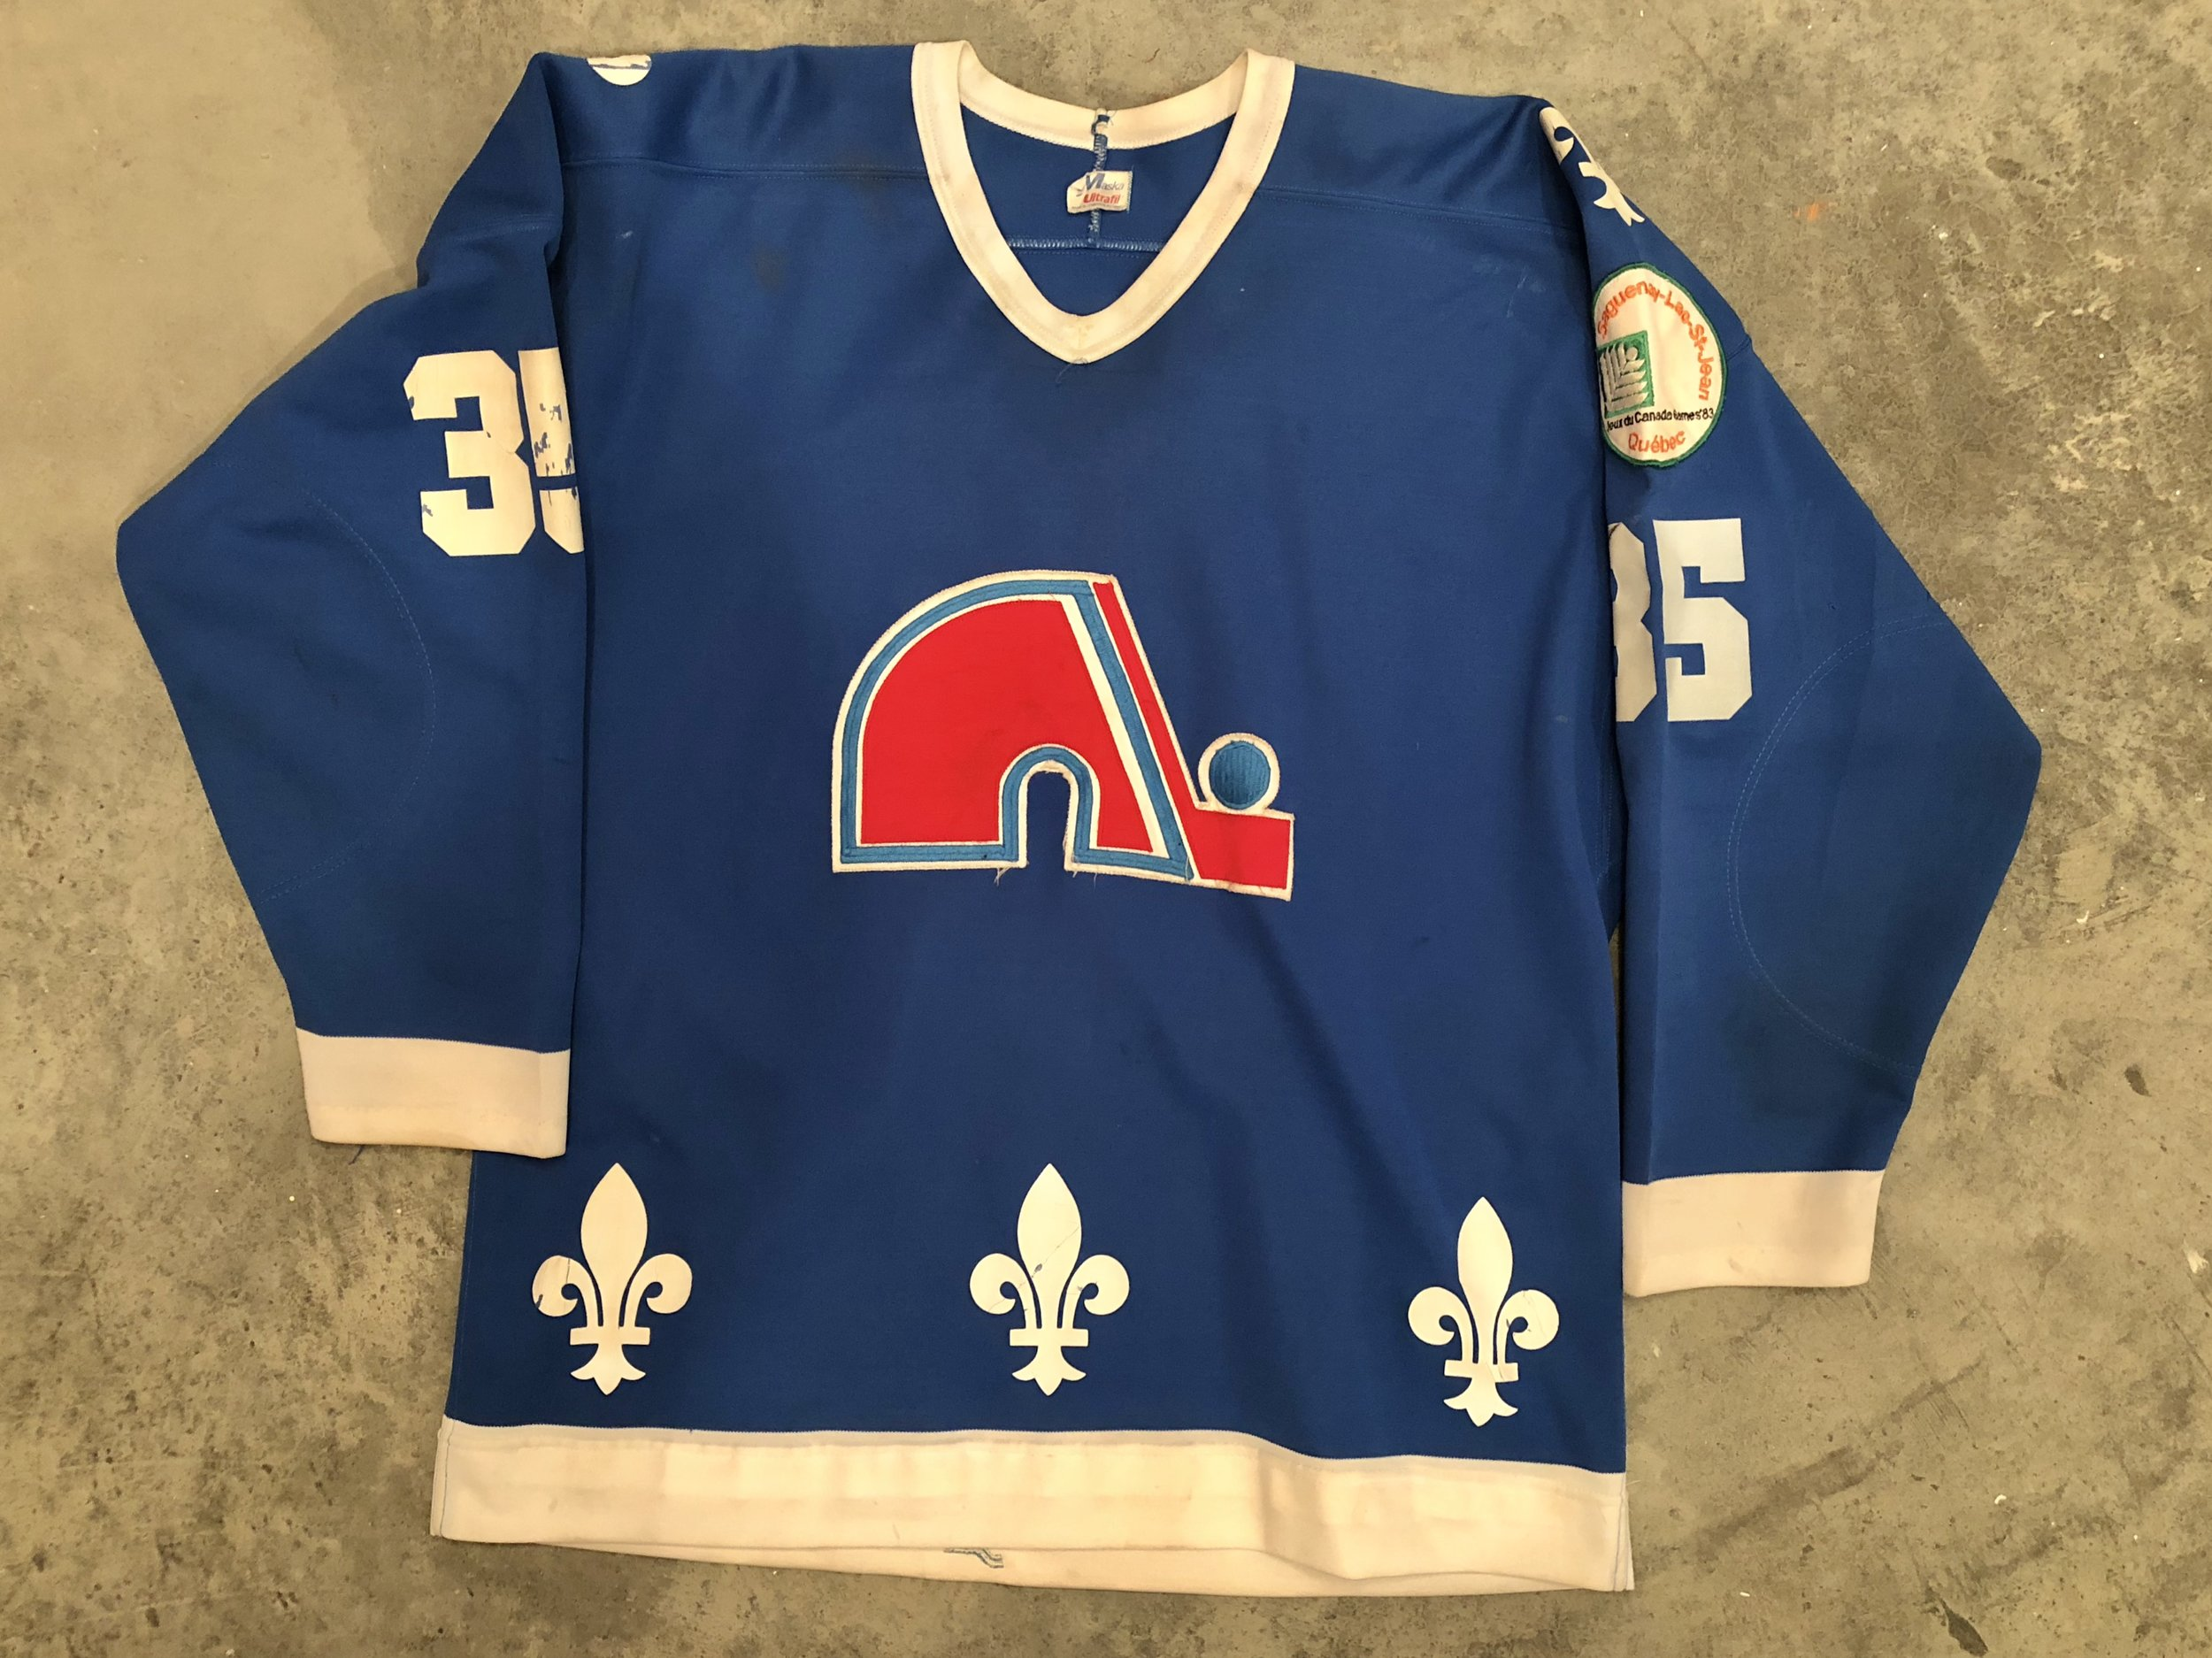 1982-83 Dan Bouchard game worn road jersey with 1983 Canada Games patch